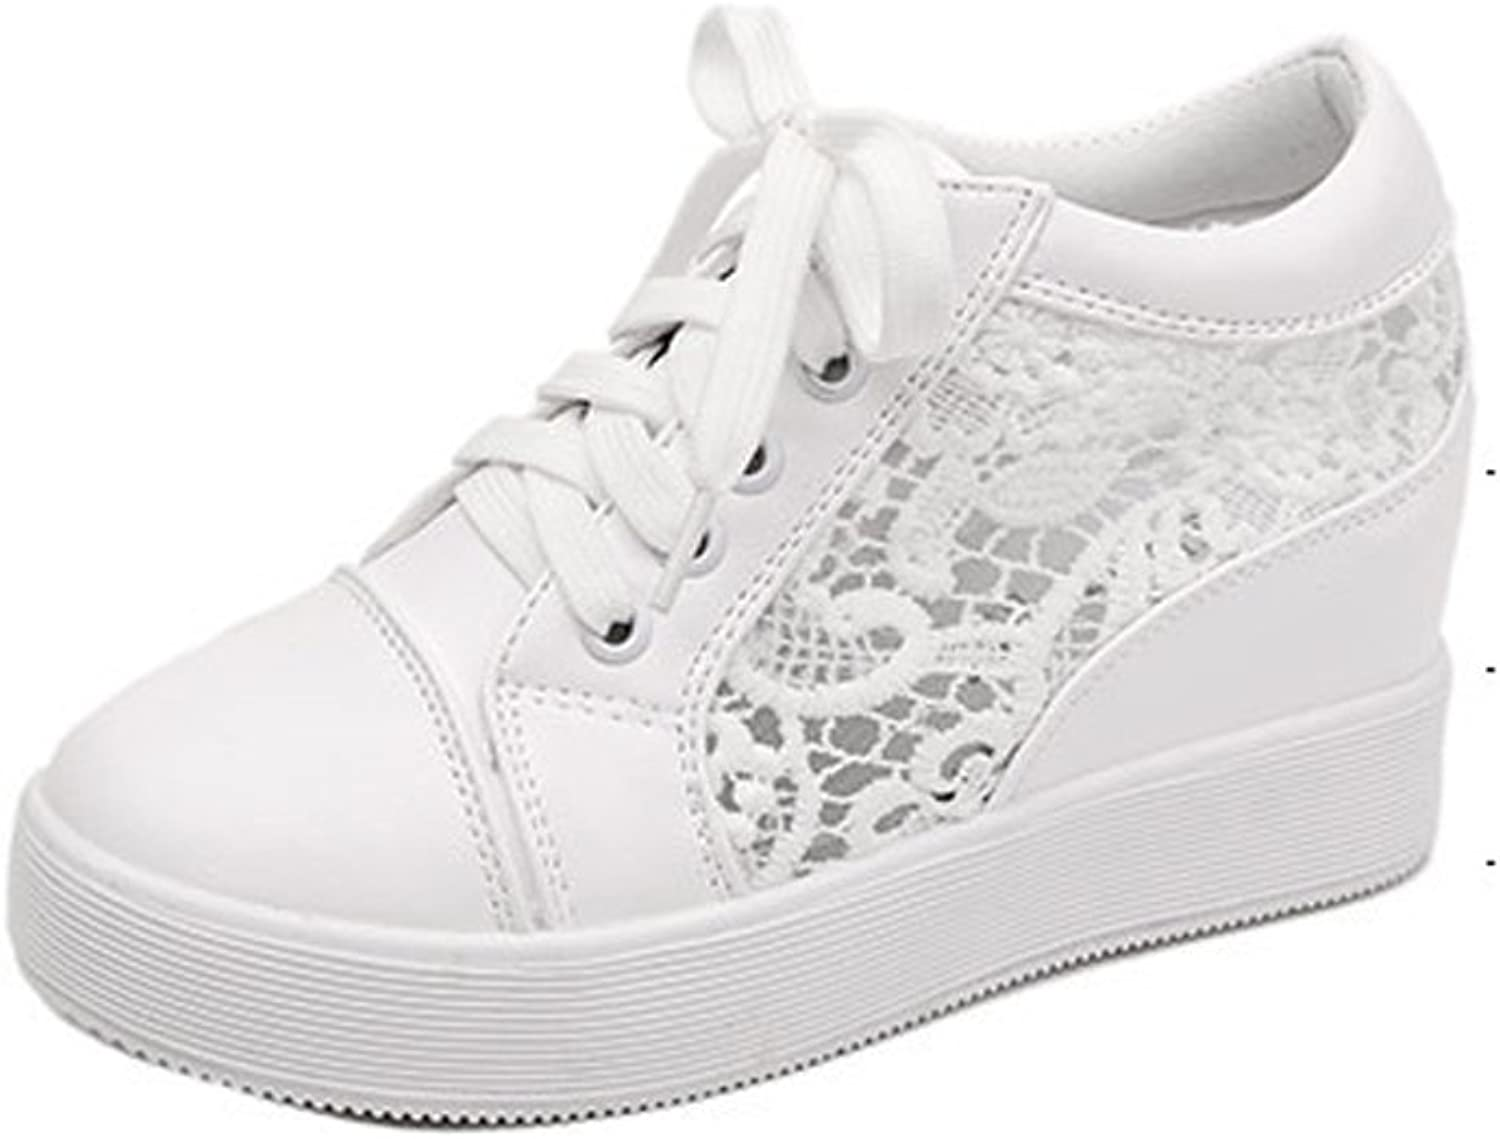 Ladola Womens Closed-Toe Lace-Up Embroidered Urethane Walking shoes